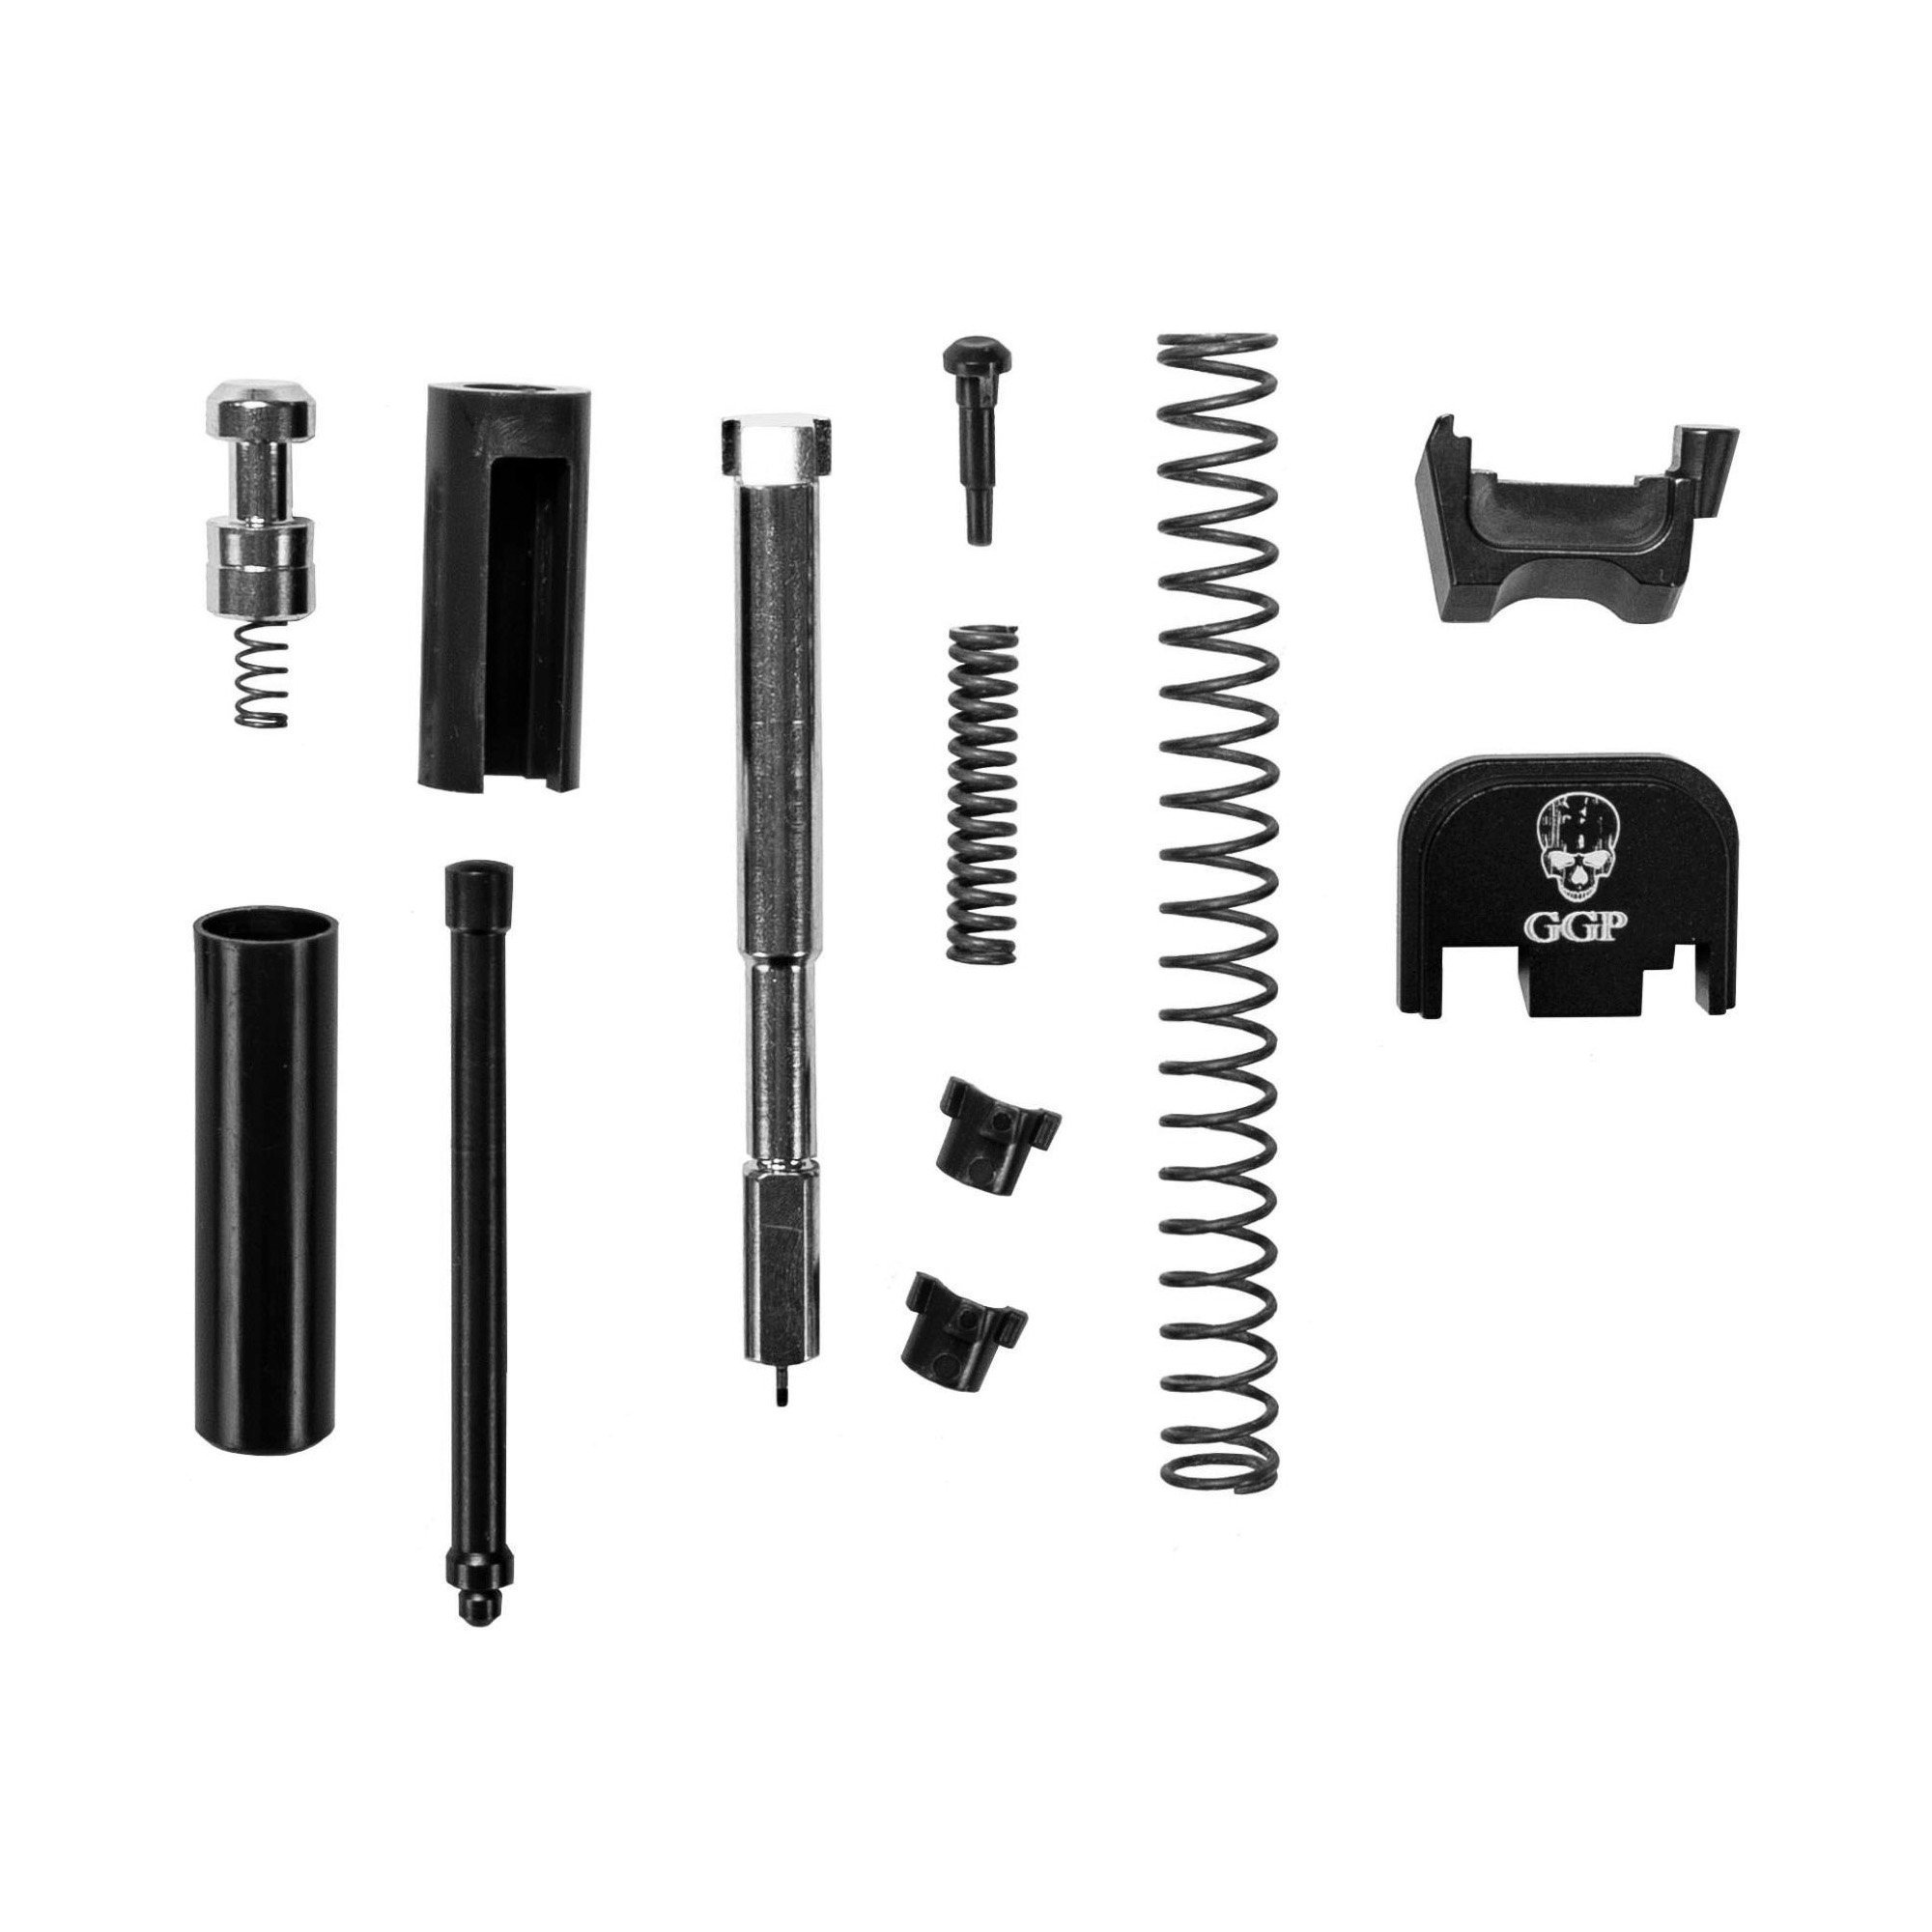 Grey Ghost Precision Slide Completion Kit W/O Recoil Rod Assembly - $99 99  - Free Shipping